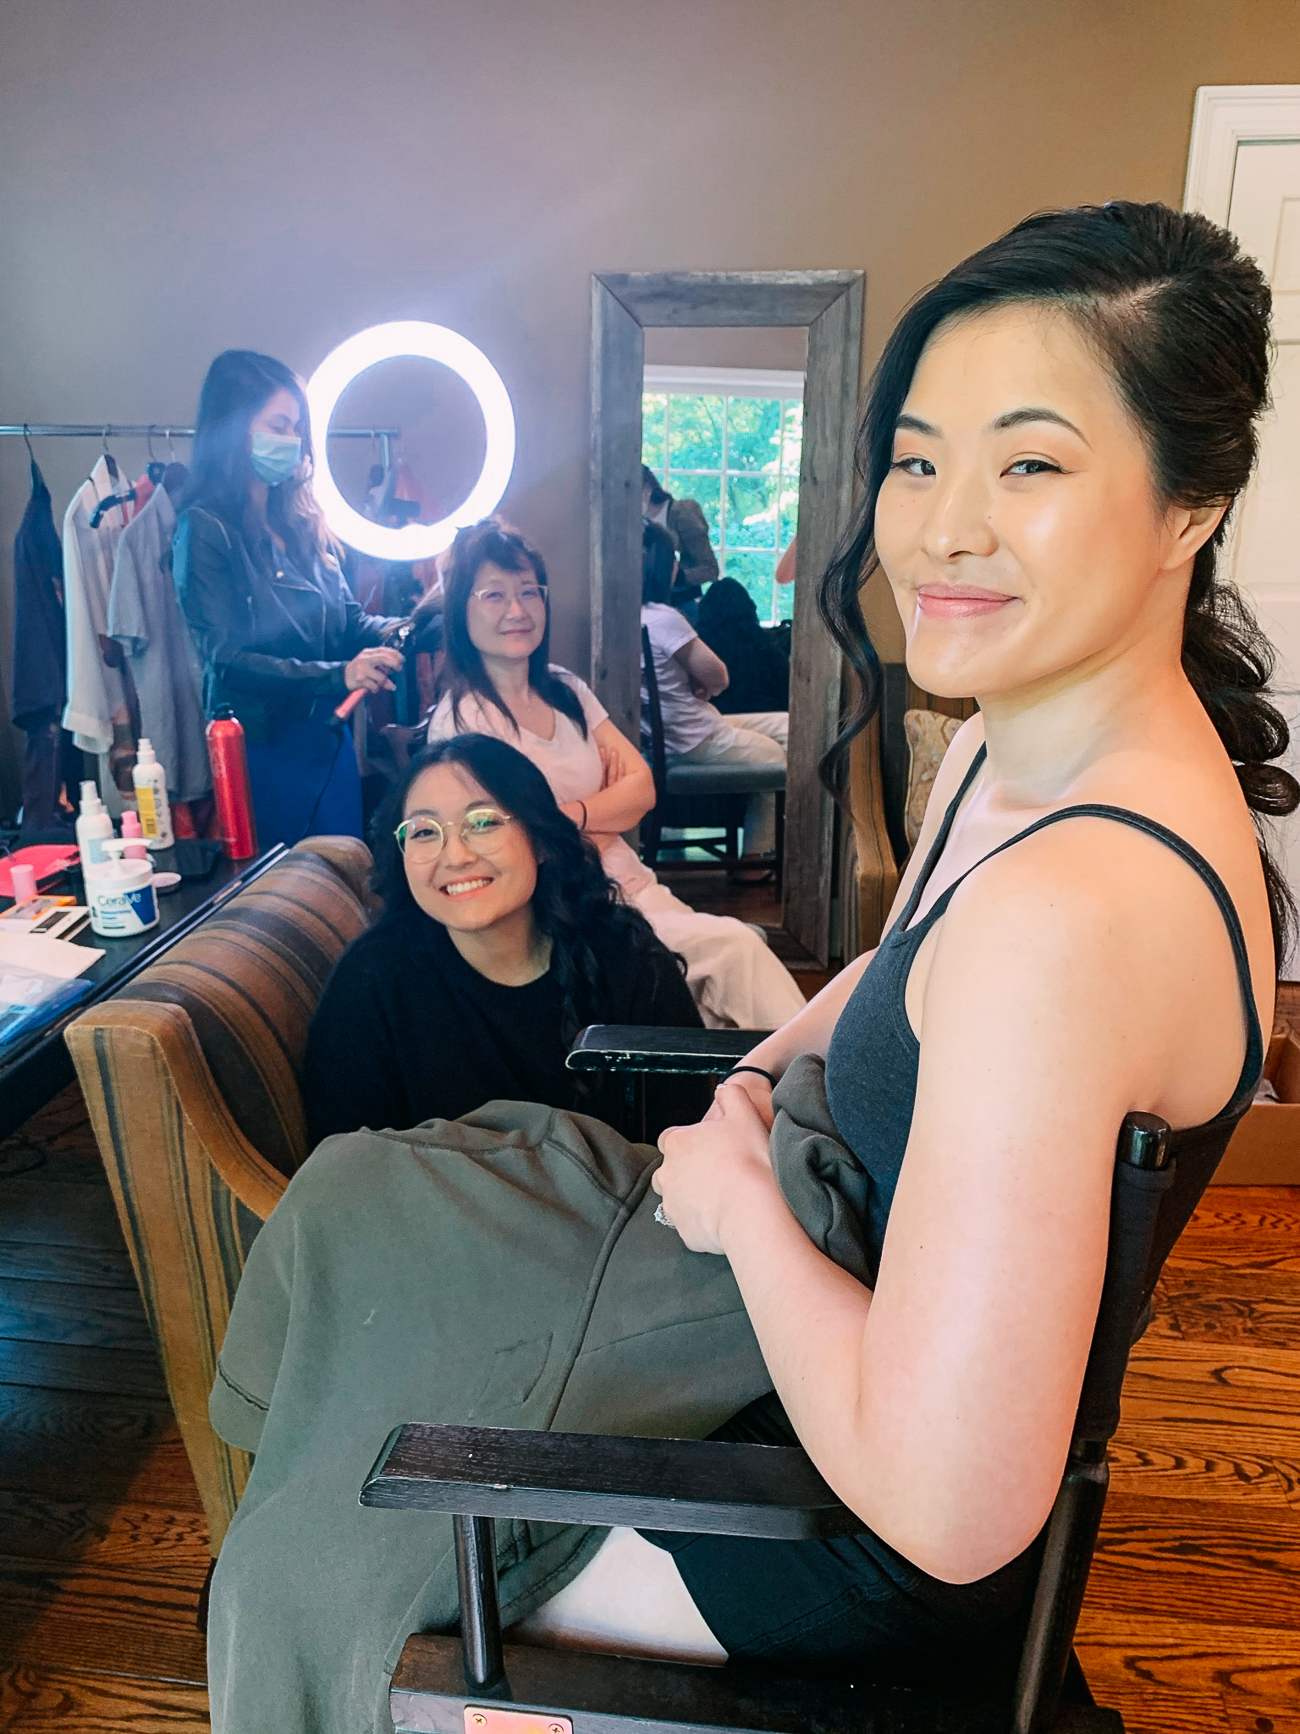 Sarah, Kaitlin, and Judy getting hair and makeup done